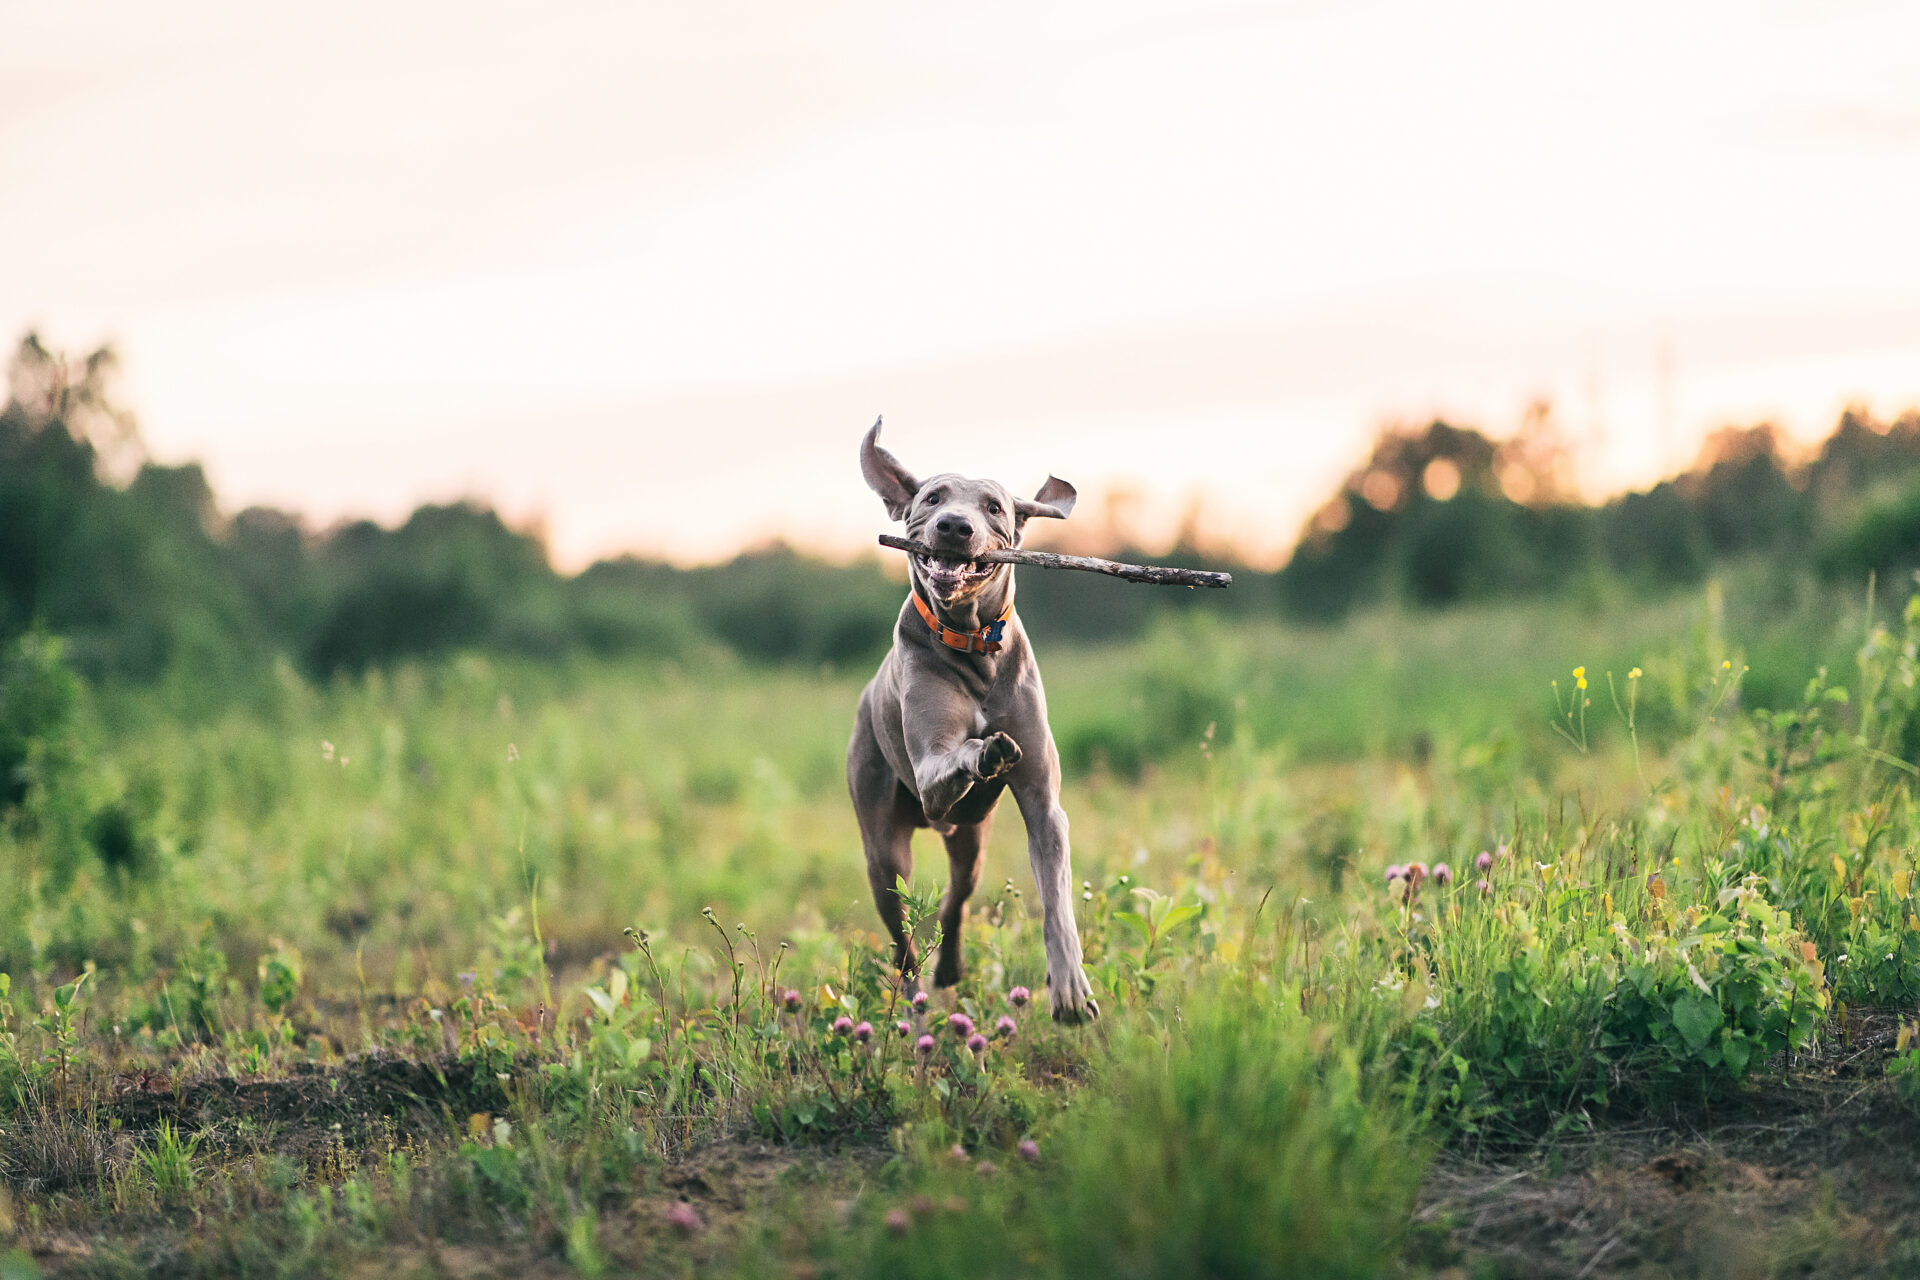 joyful dog playing with whip while walking on green field